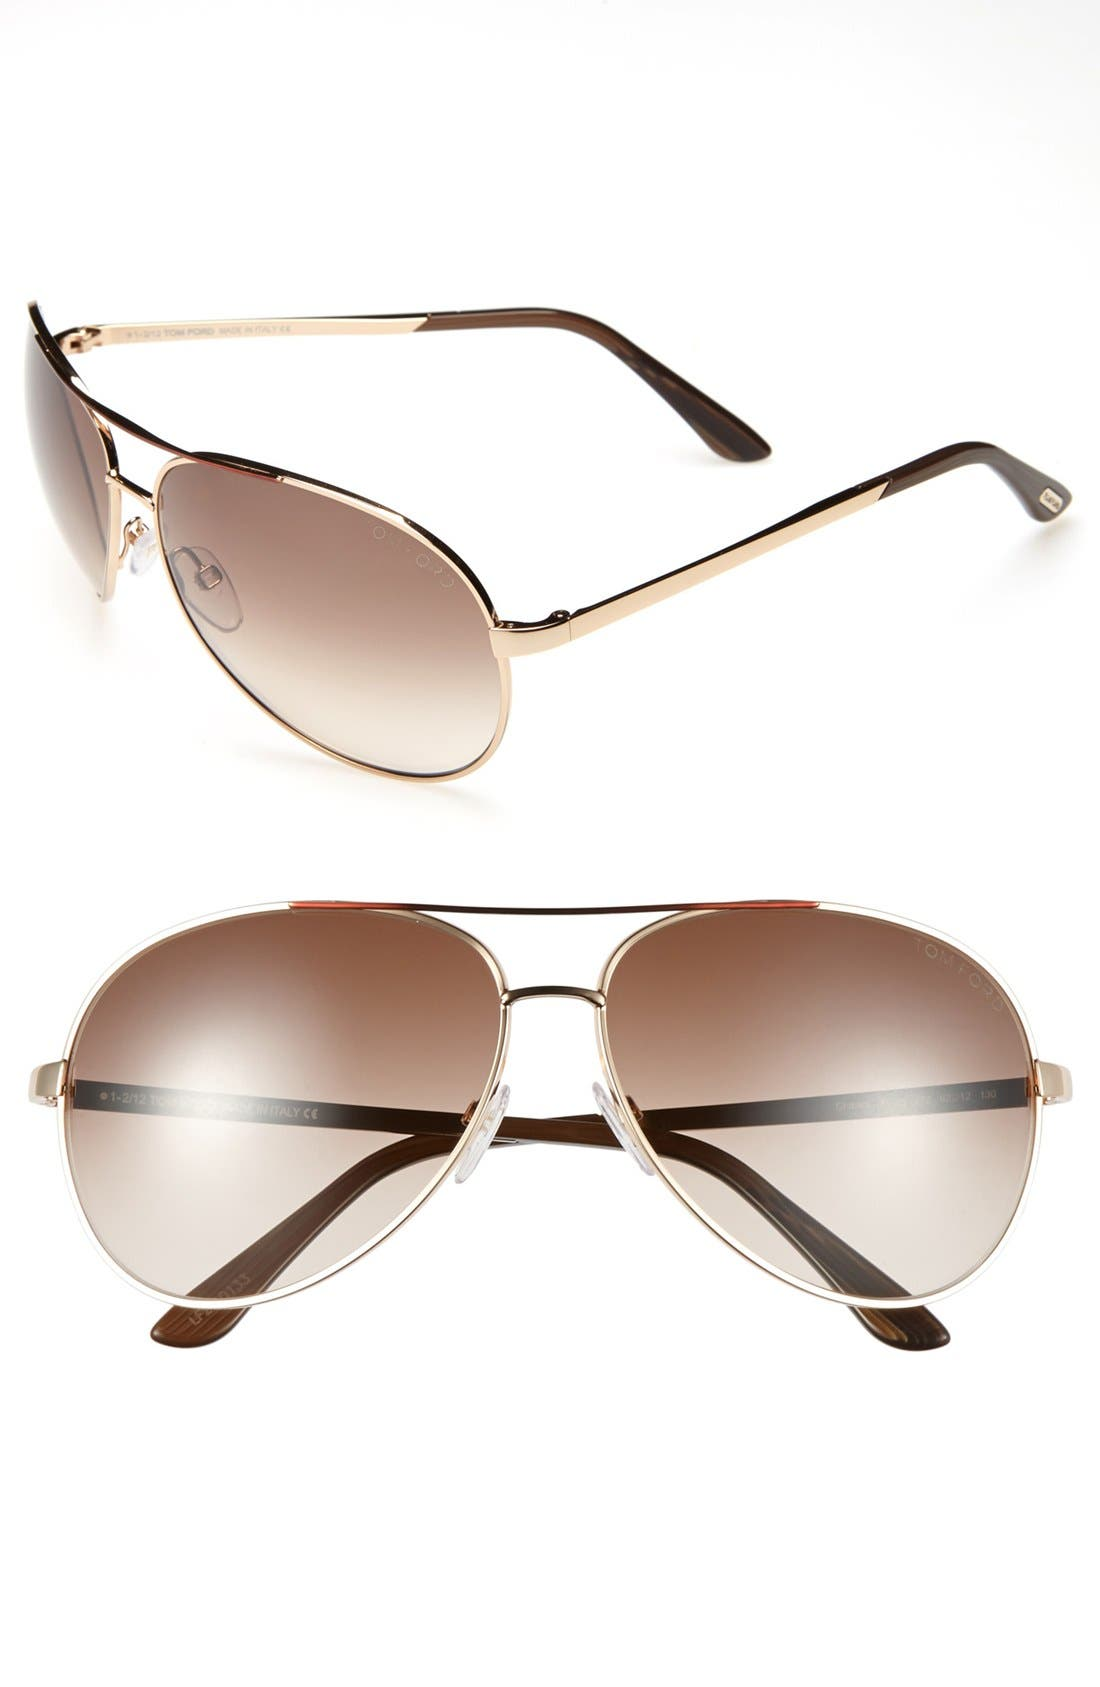 Tom Ford 'Charles' 62mm Aviator Sunglasses